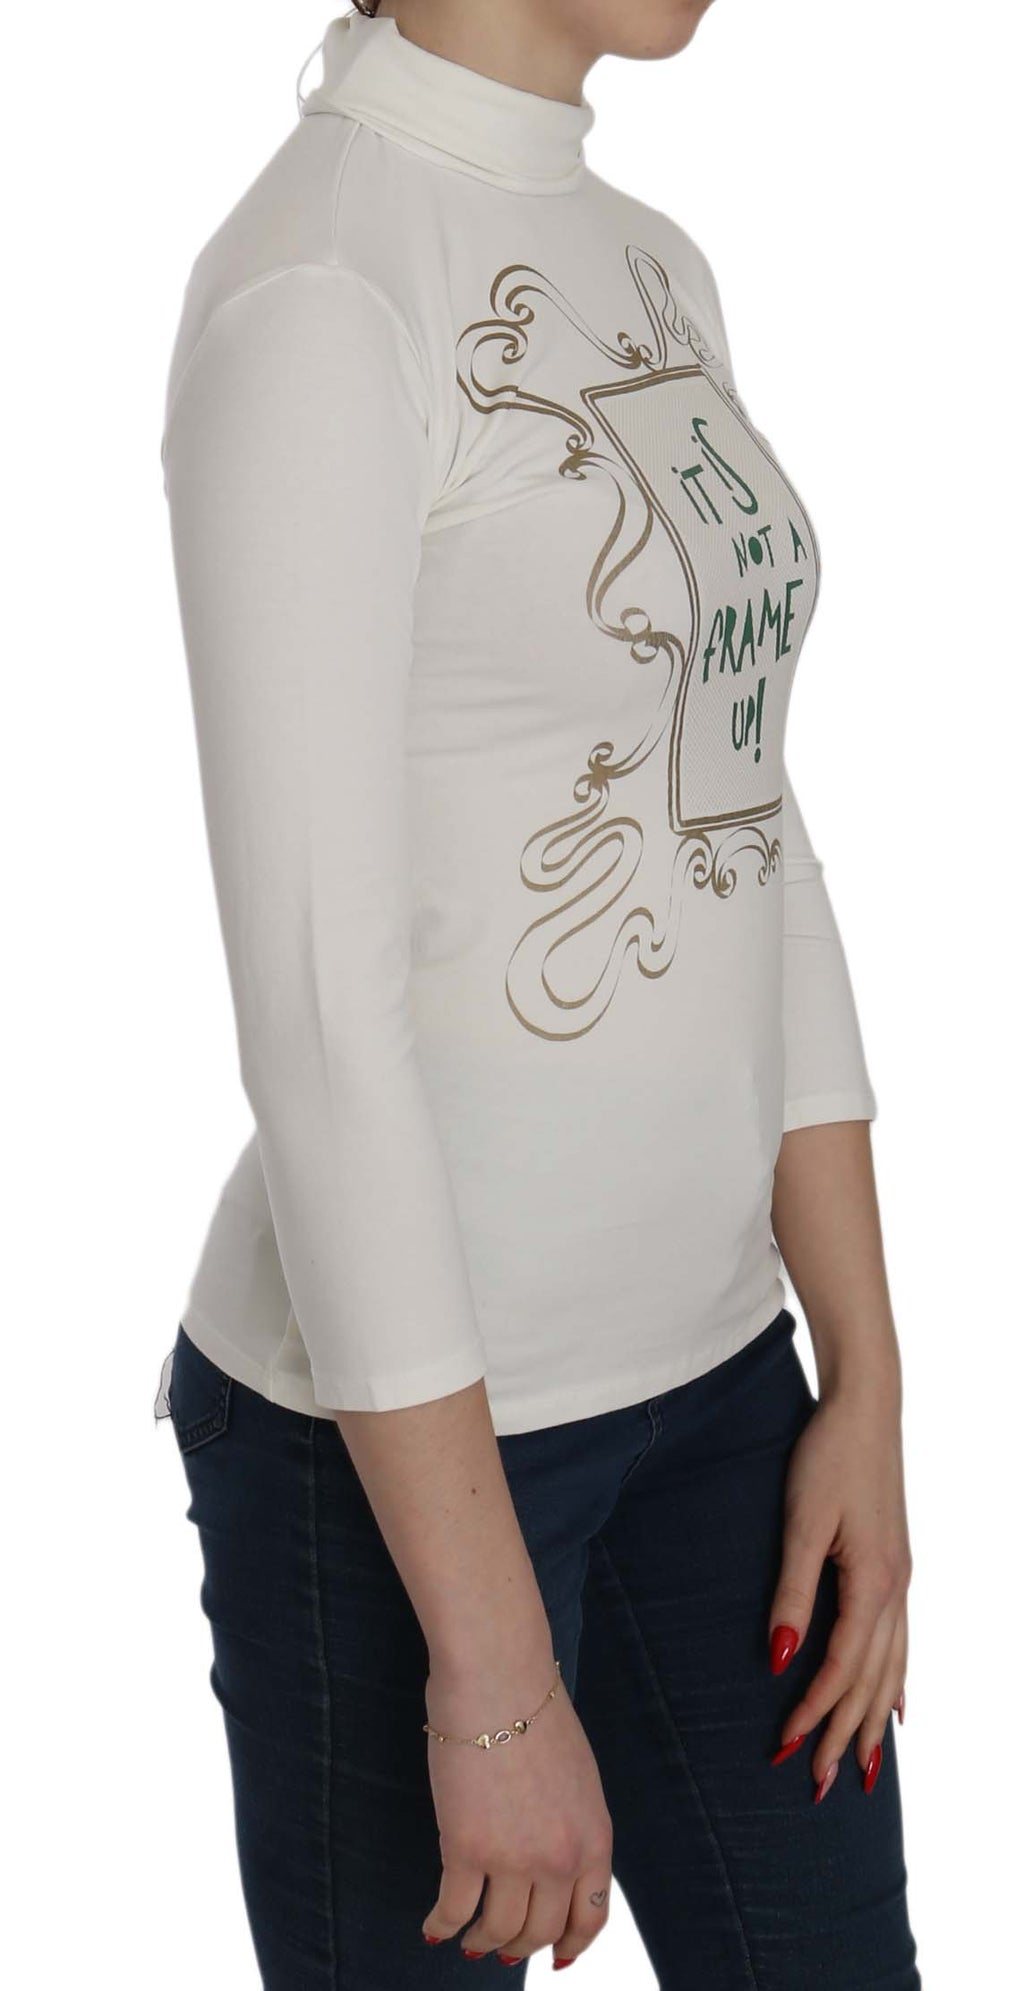 White Printed Turtle Neck 3/4 Sleeve Top Cotton Blouse